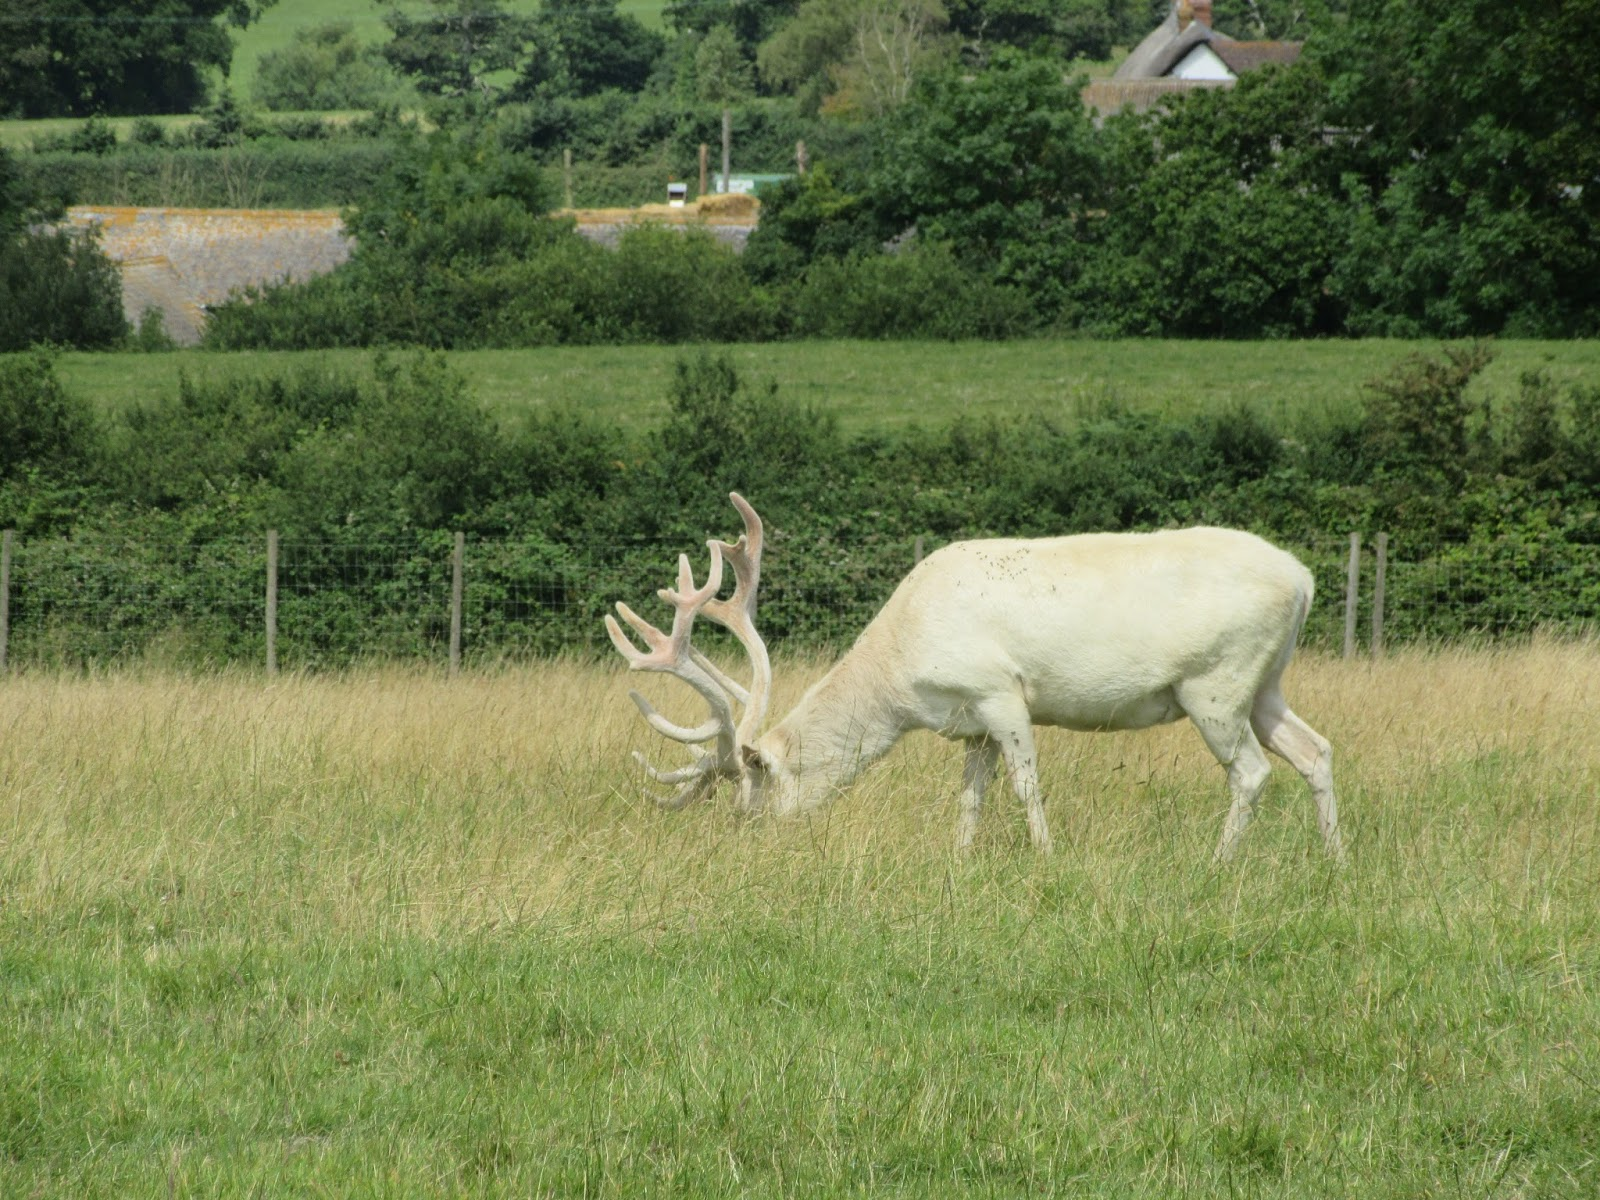 White stag in a field